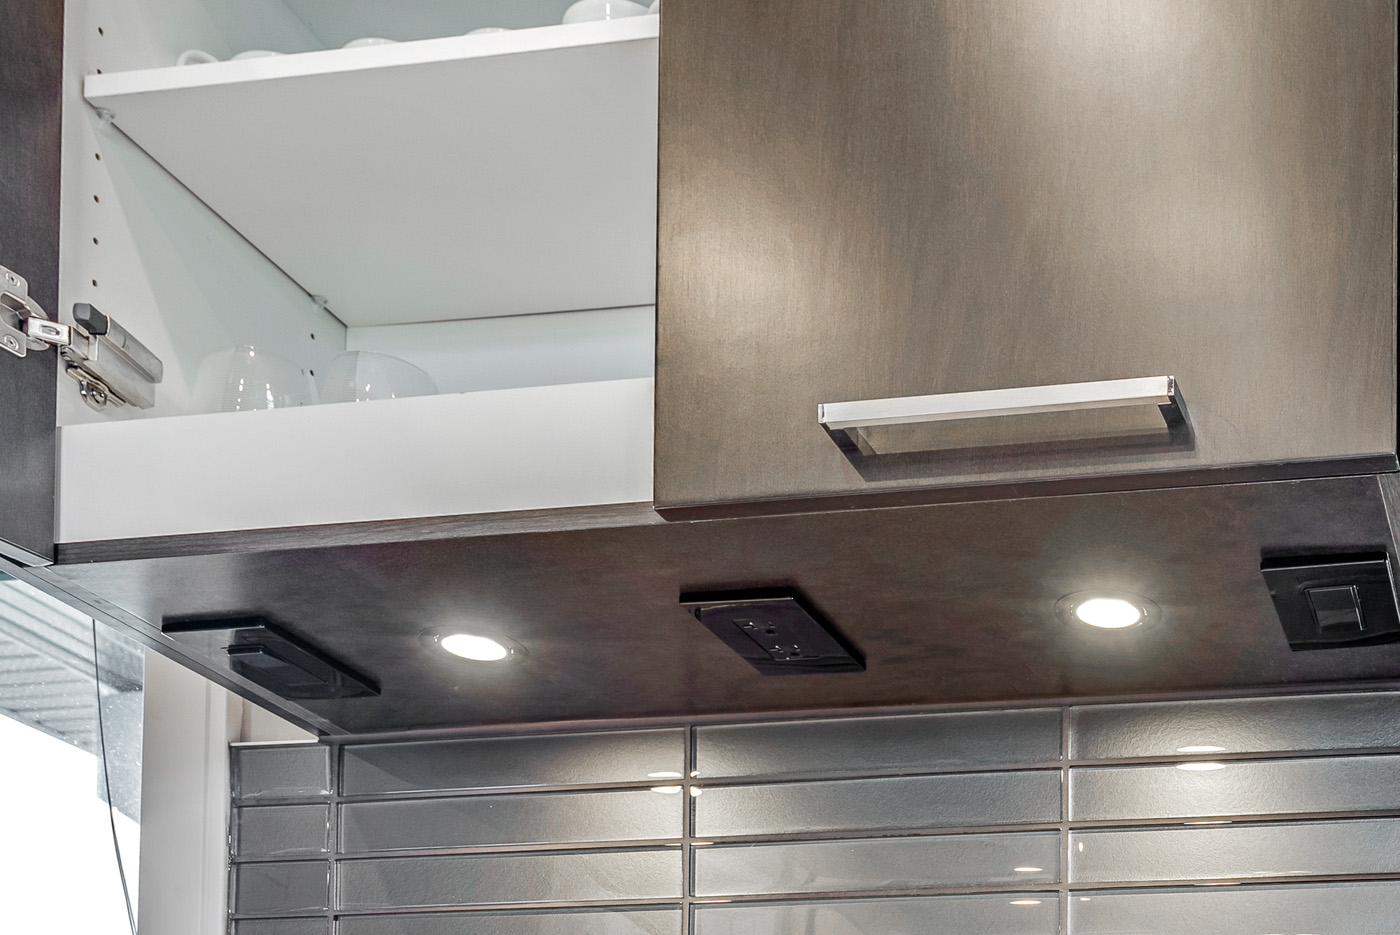 hight resolution of the light box cabinet modification can be built into your upper cabinets which is used to house and conceal wires and under cabinet lighting